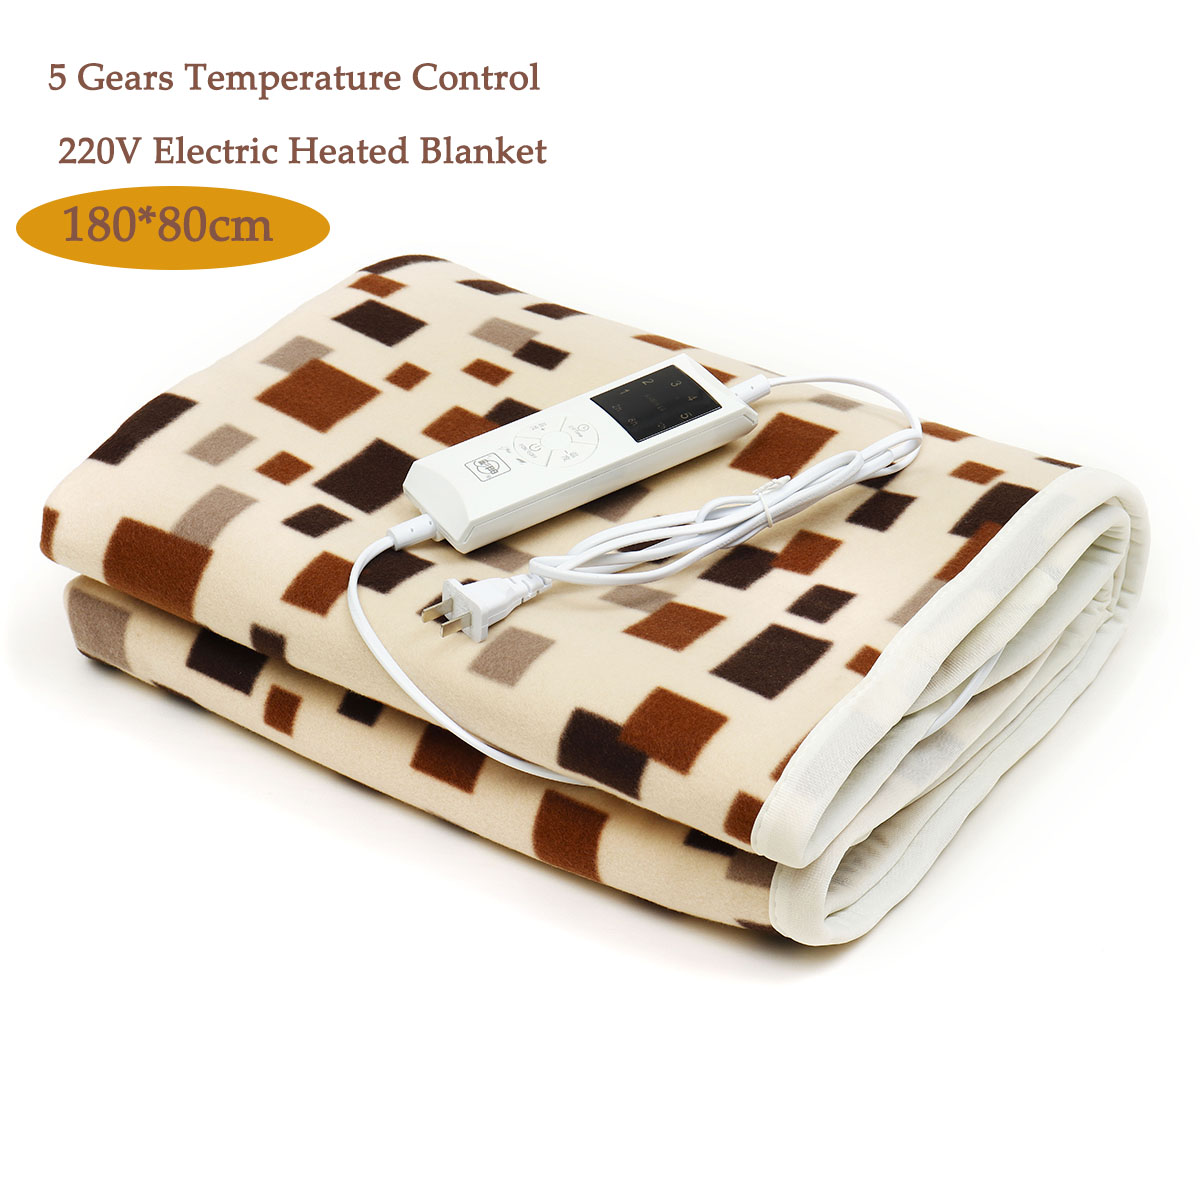 180x80cm Electric Blanket Heater Adjustable Temperature Heated Carpet Thermostat Body Warmer Bed Mattress Electric Heated Carpet